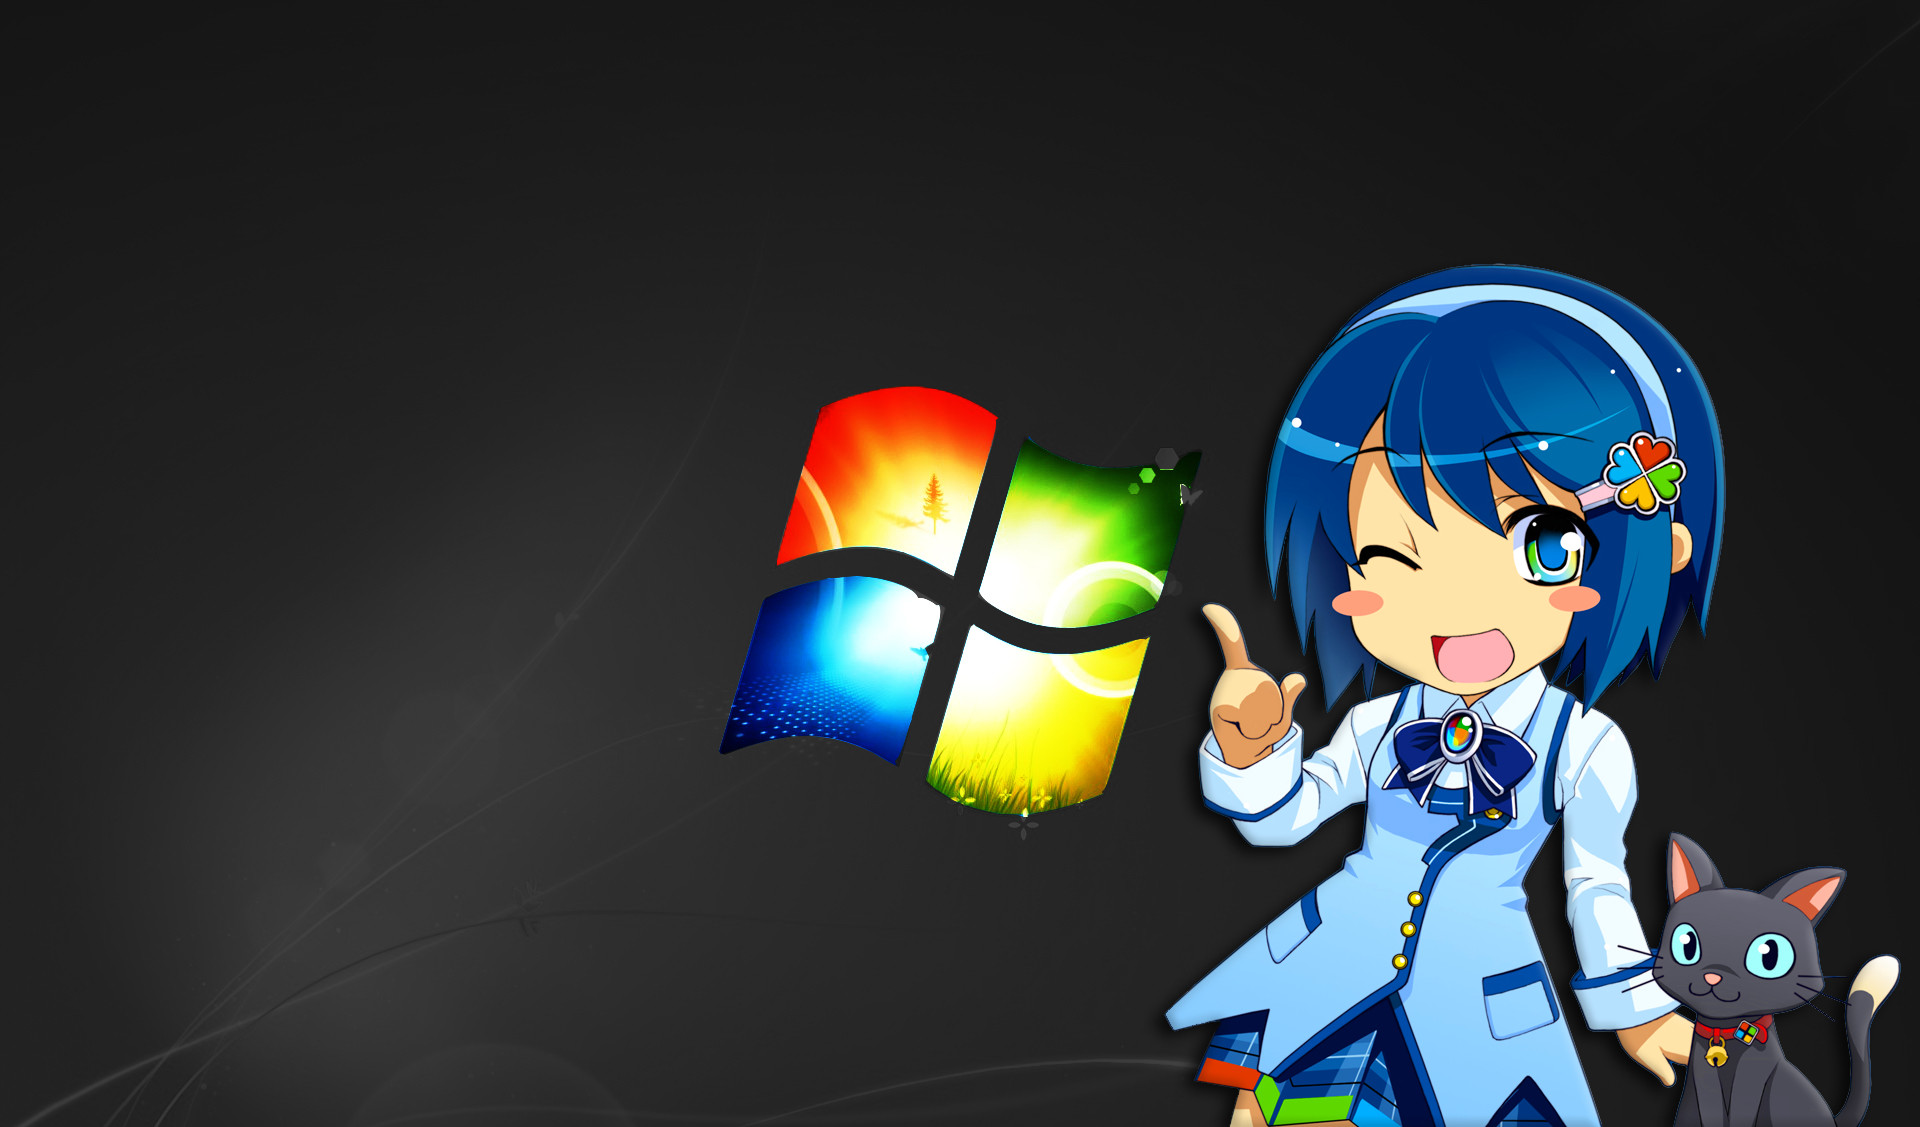 Res: 1920x1127, Windows-7-Anime-Wallpapers-Gallery-(39-Plus)-PIC-WPW4010856